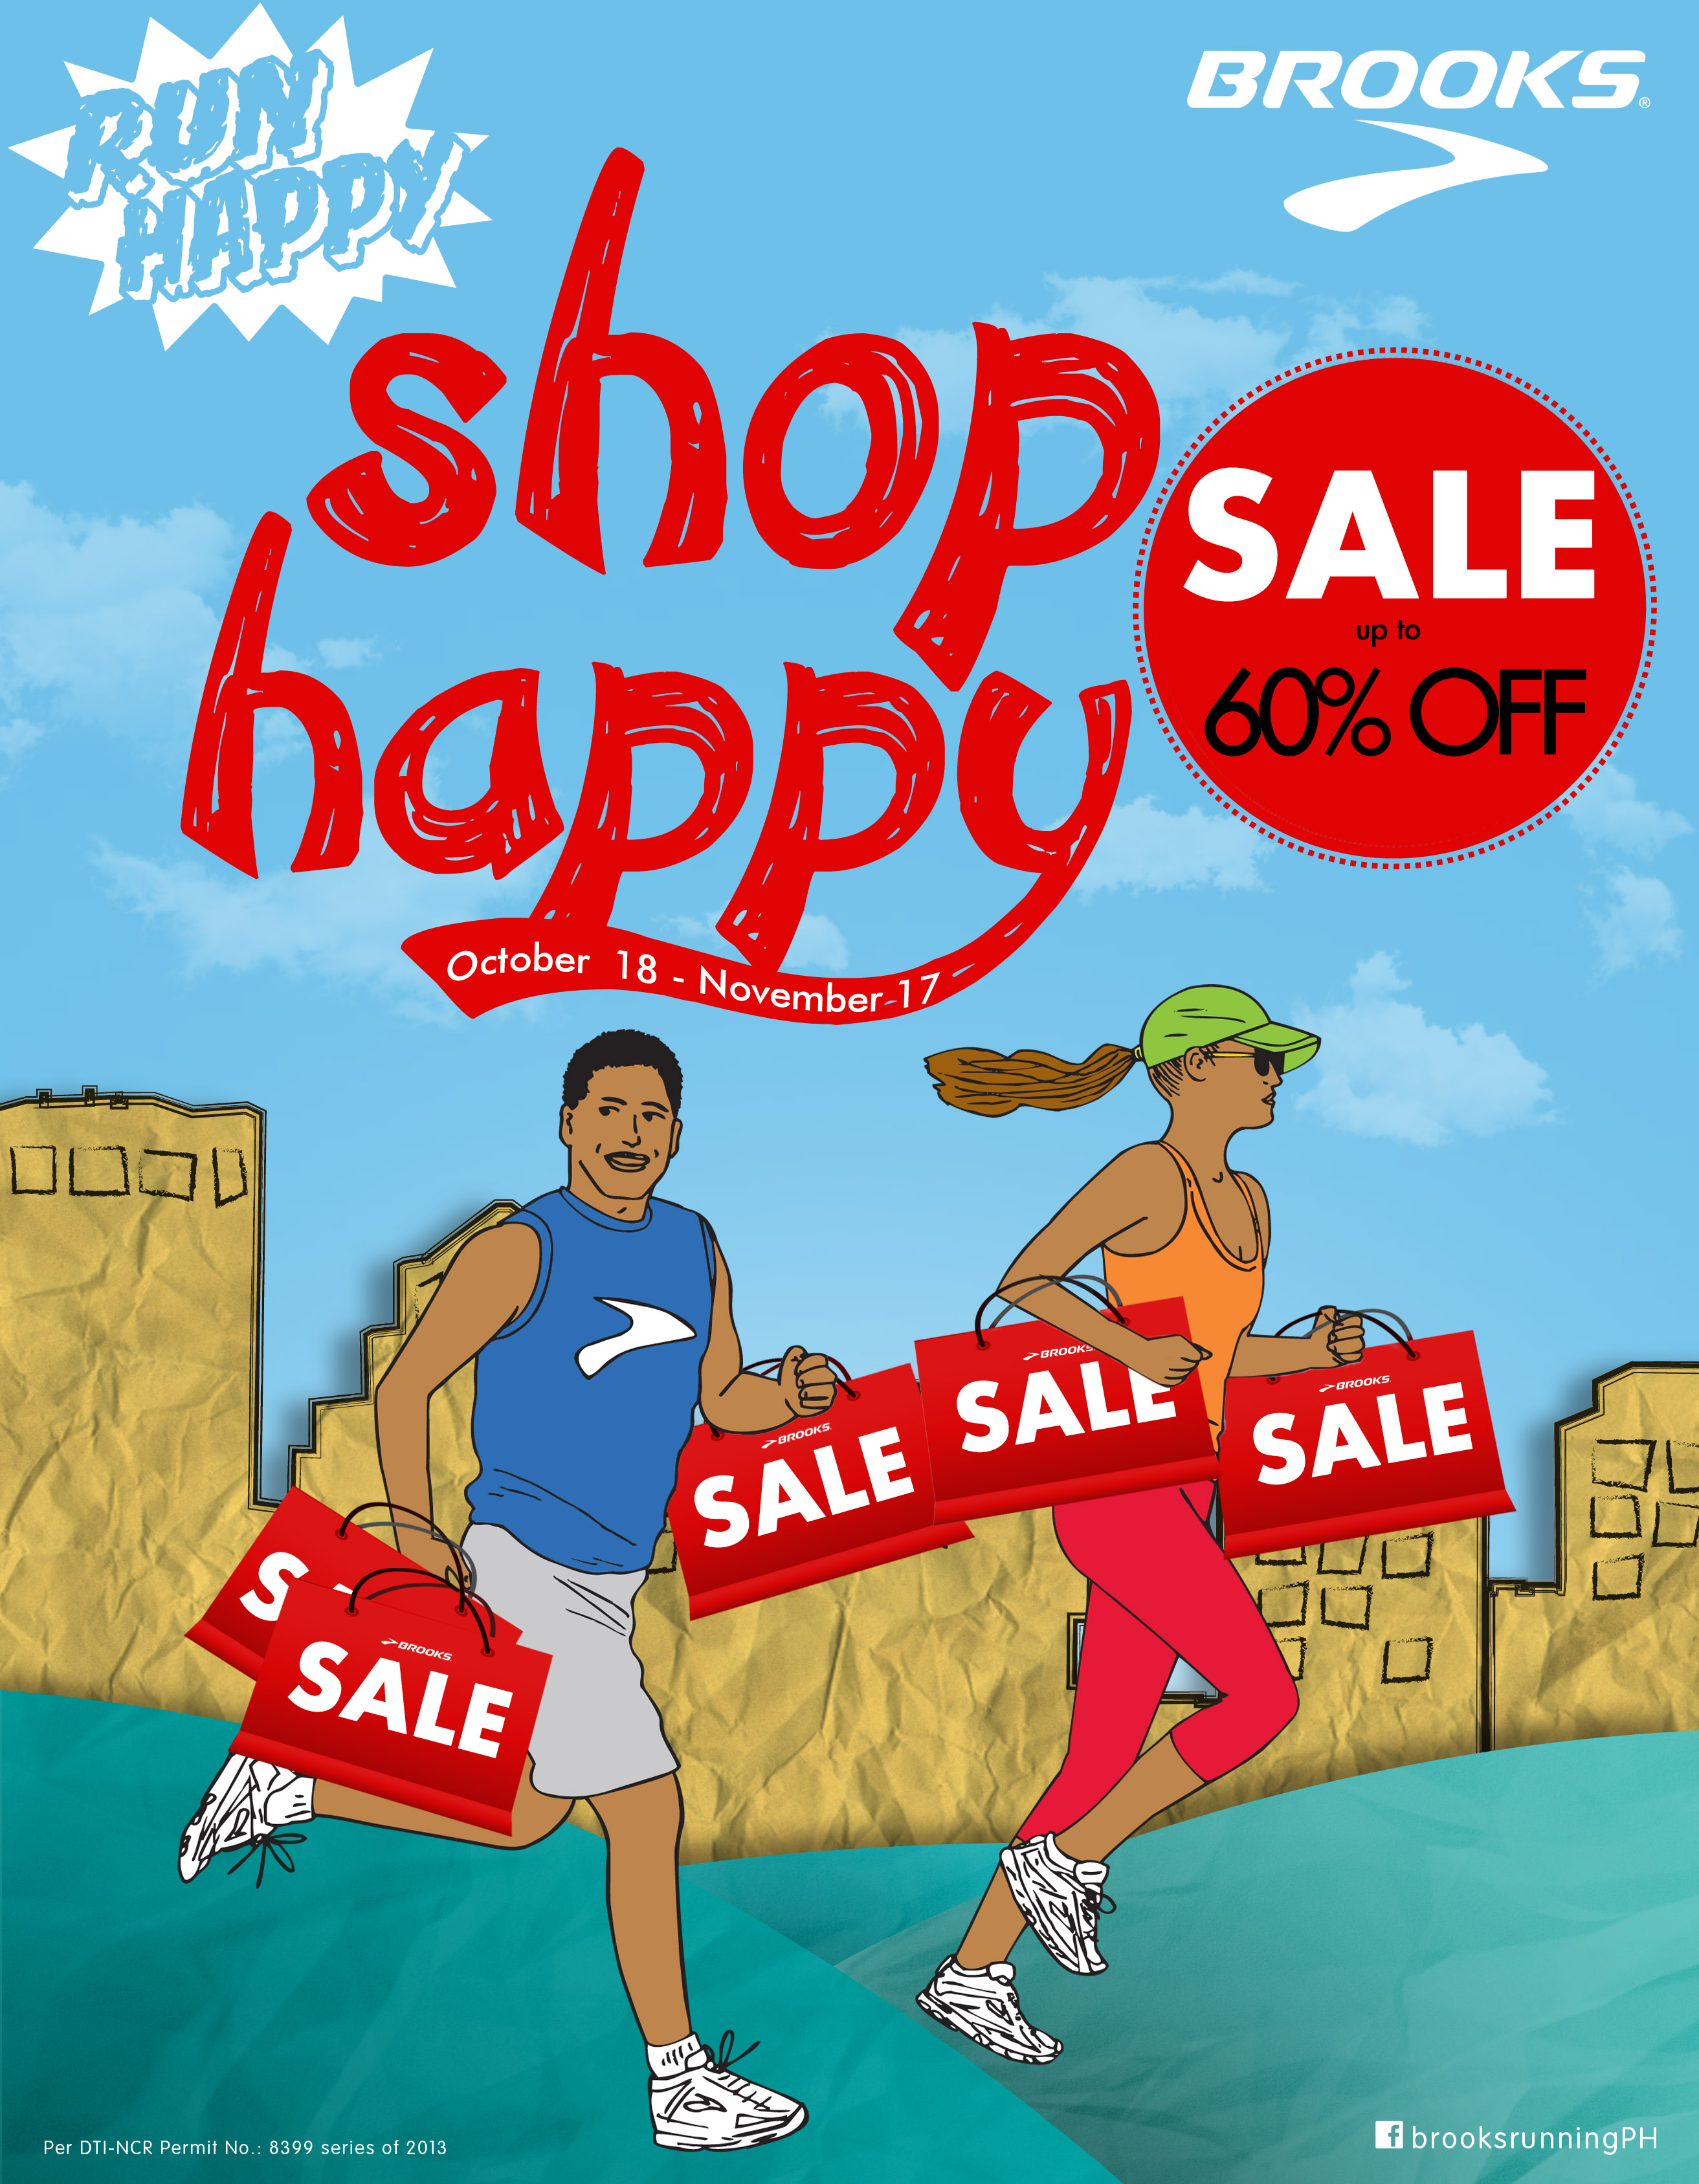 Brooks Run Happy Shop Happy Sale @ SM City North Edsa October - November 2013